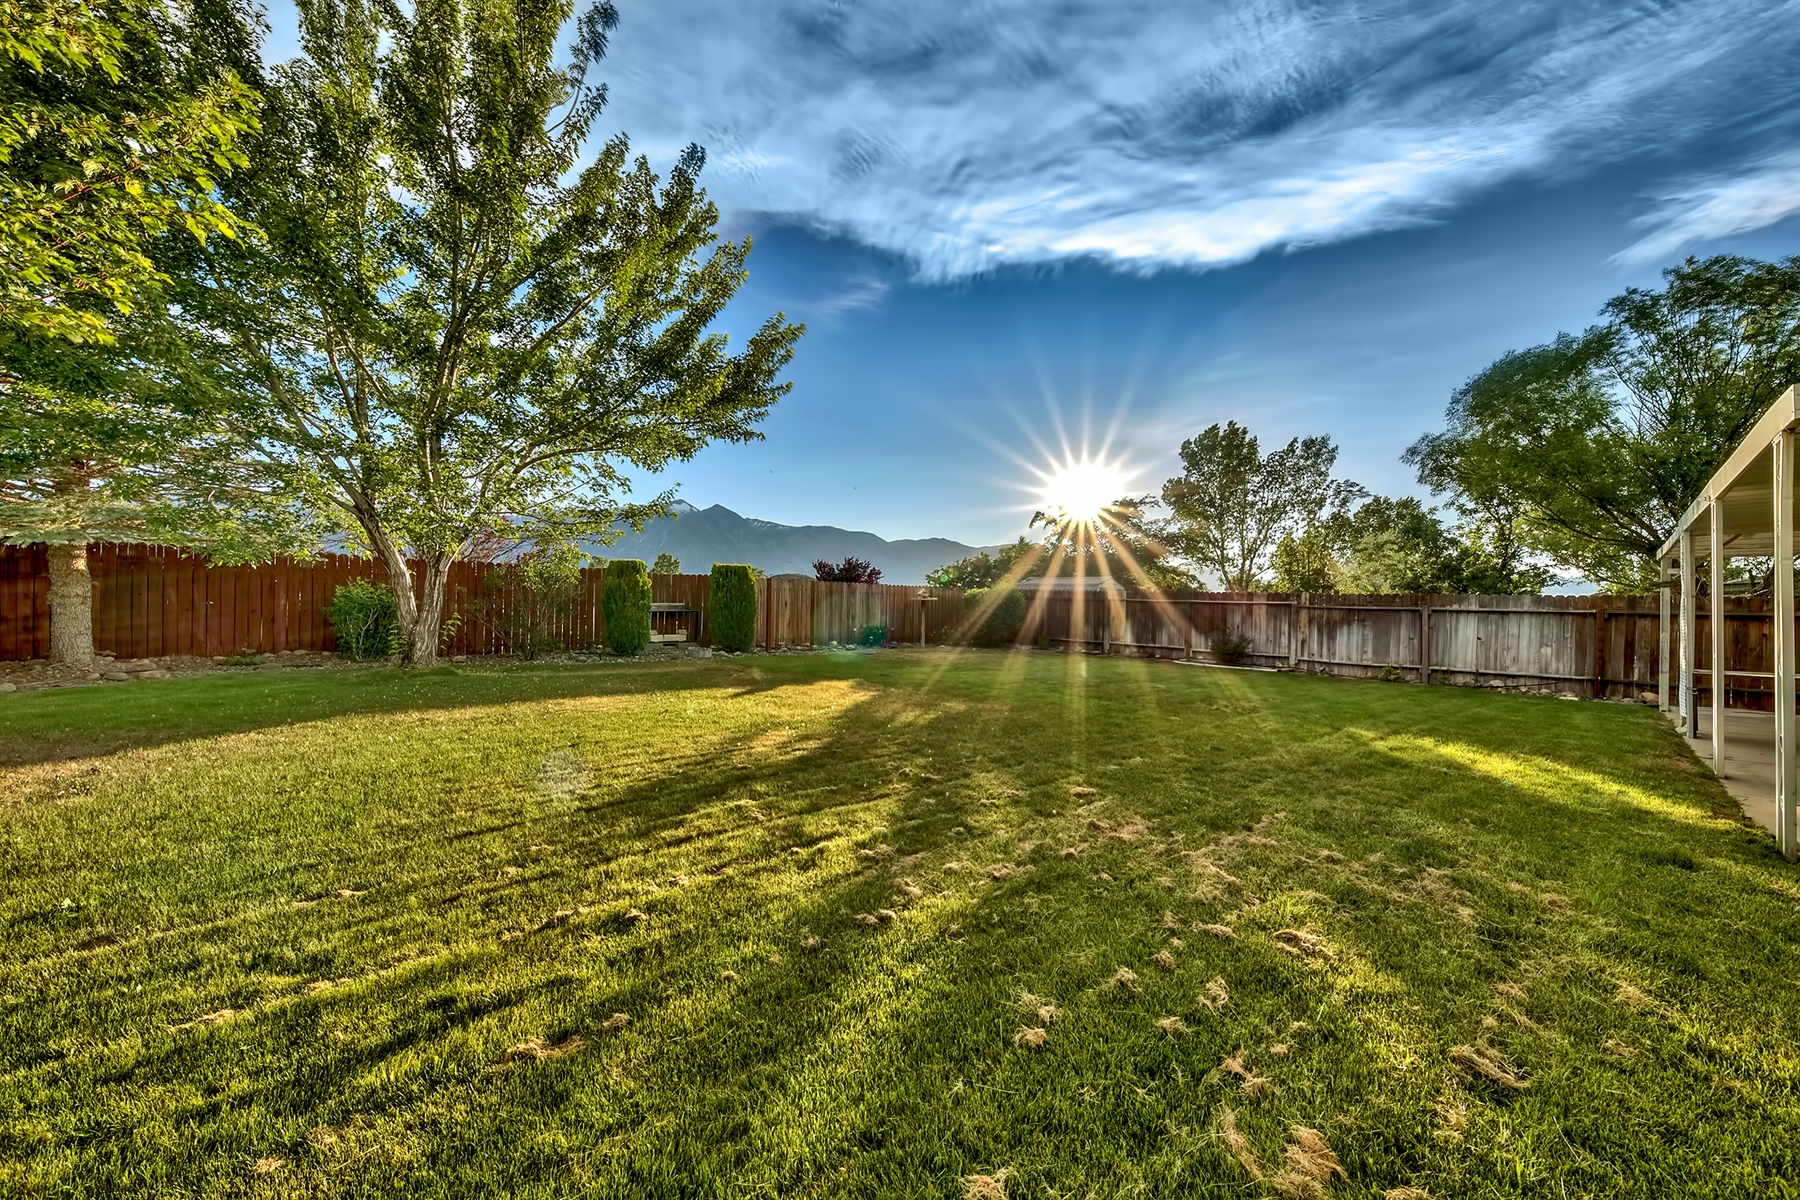 Additional photo for property listing at 1373 Mary Jo Drive, Gardnerville, NV 89460 1373 Mary Jo Drive Gardnerville, Nevada 89460 United States